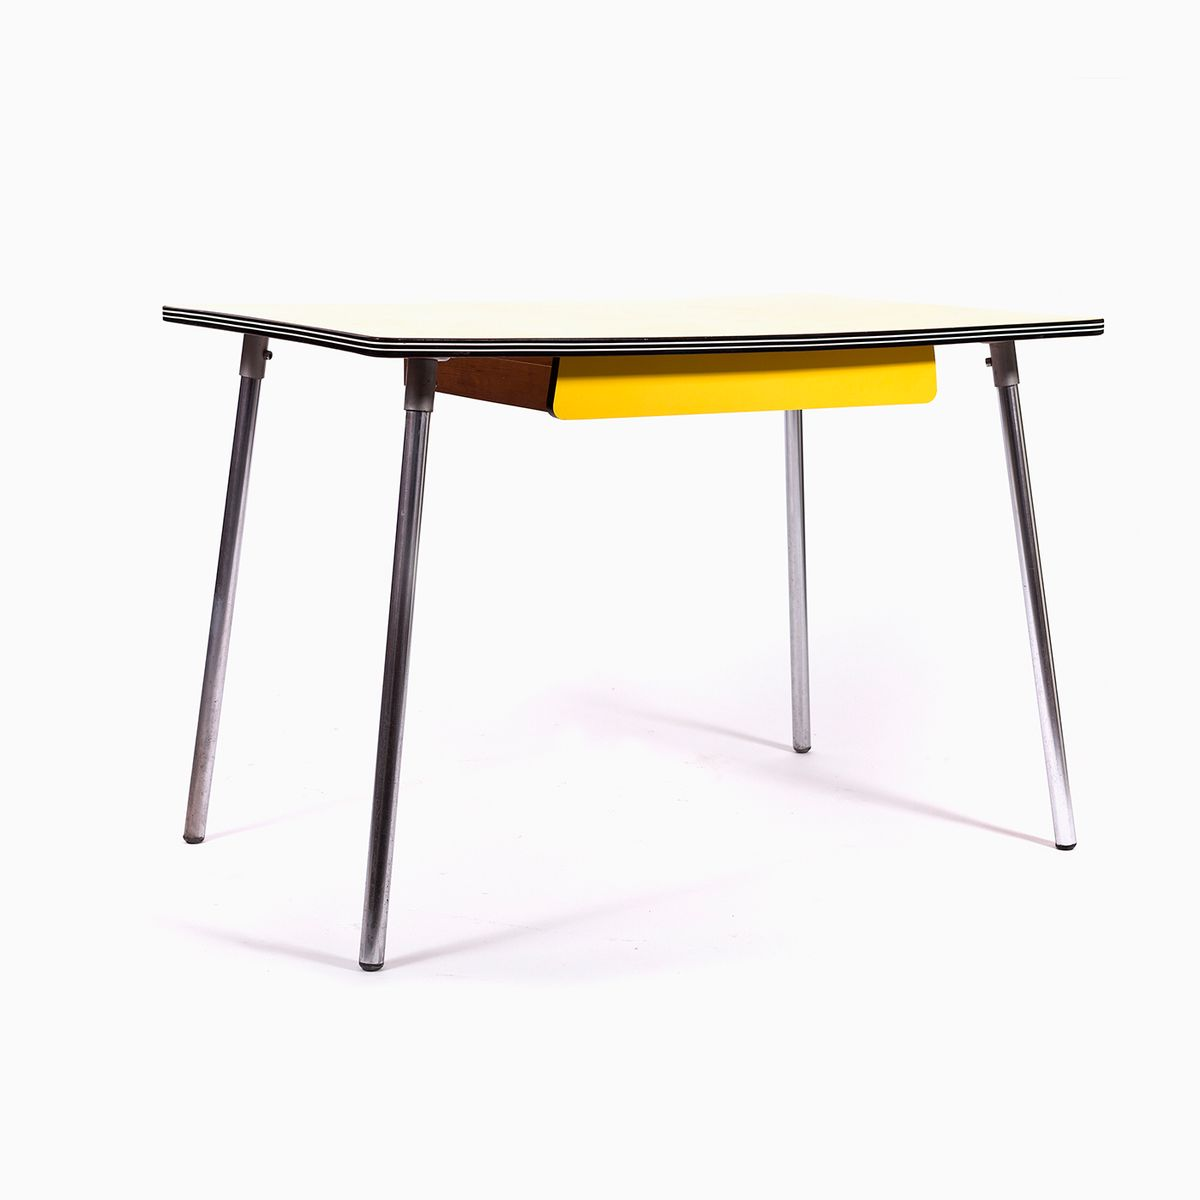 Great Vintage Yellow Formica Dining Table With Chrome Legs